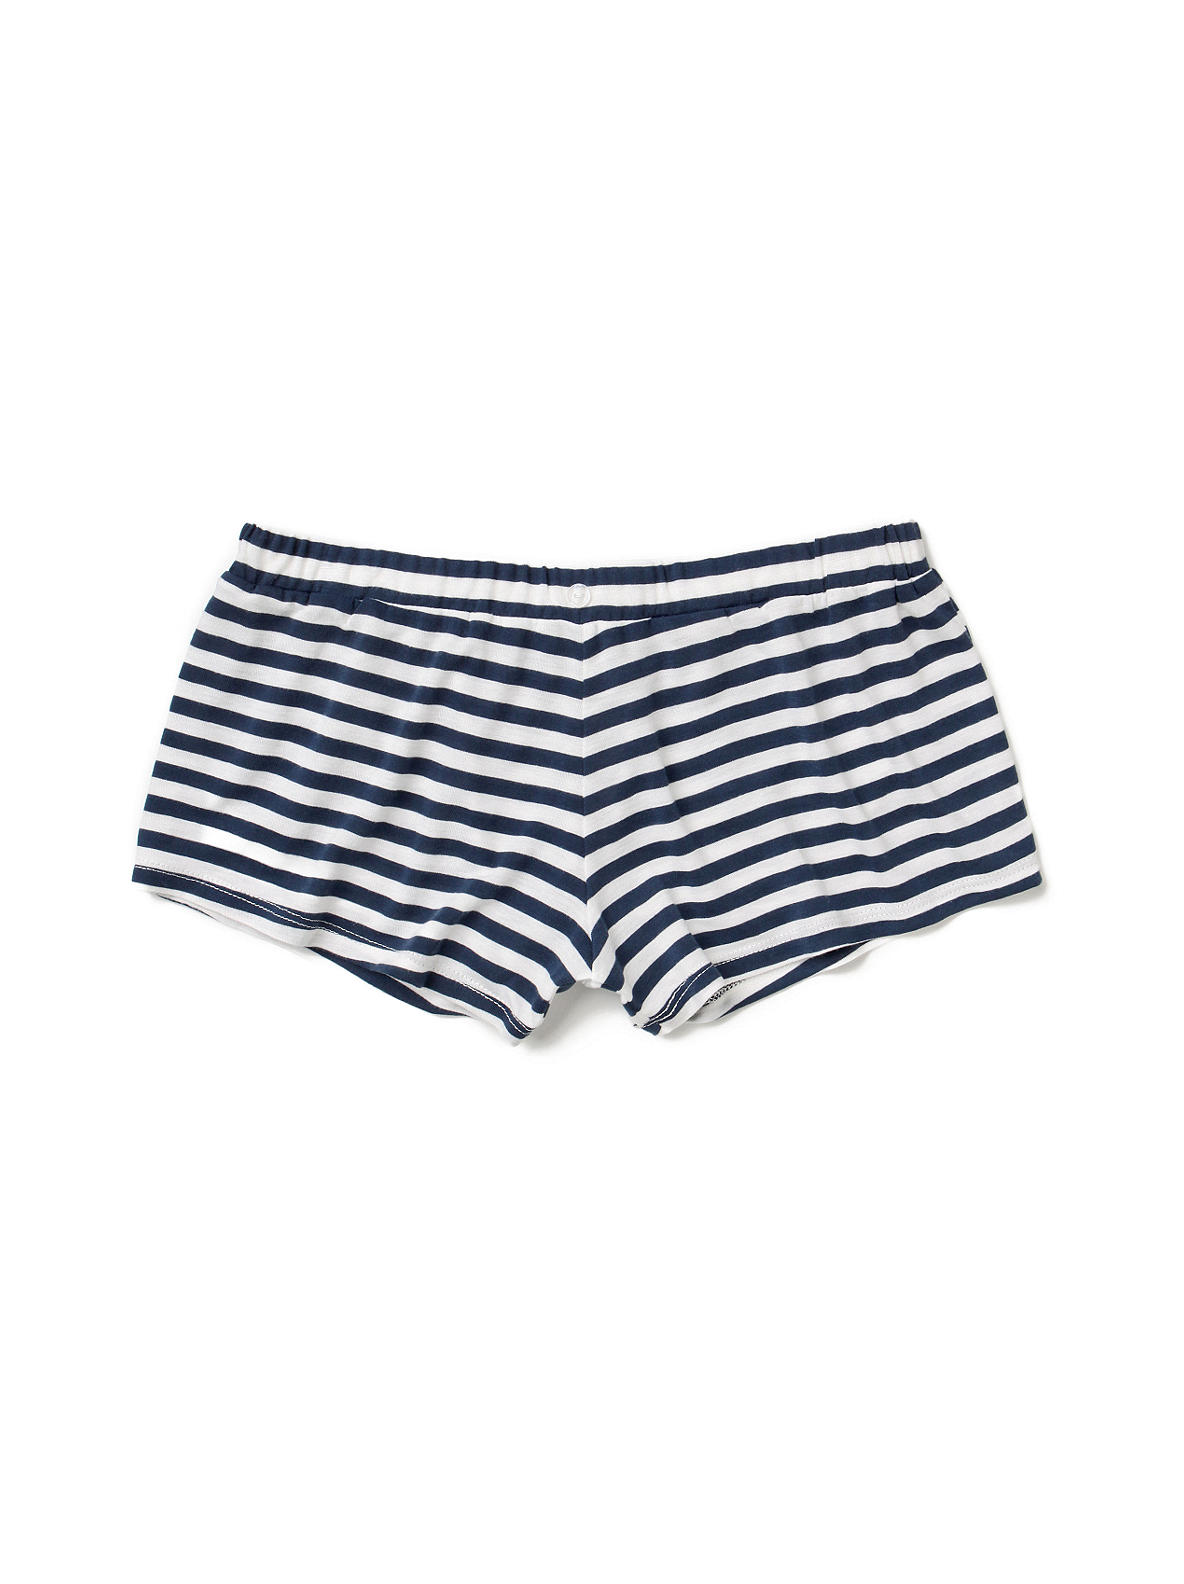 Horizon Boyshorts - Anthropologie.com :  striped underwear boyshorts shorts